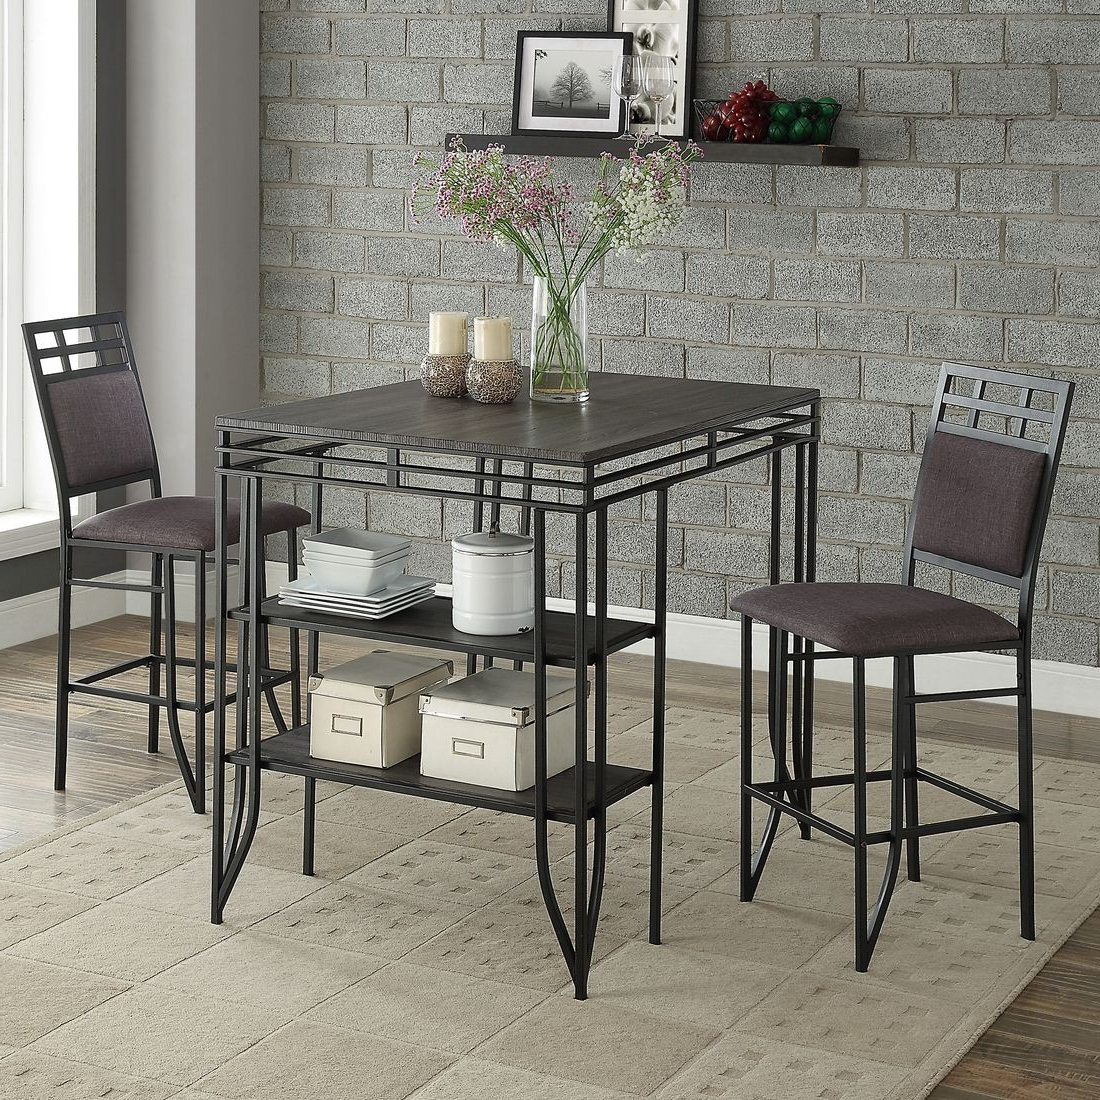 3 Piece Dining Sets Pertaining To Well Known Crown Mark Matrix 3 Piece Counter Height Dining Set In Black (View 20 of 20)